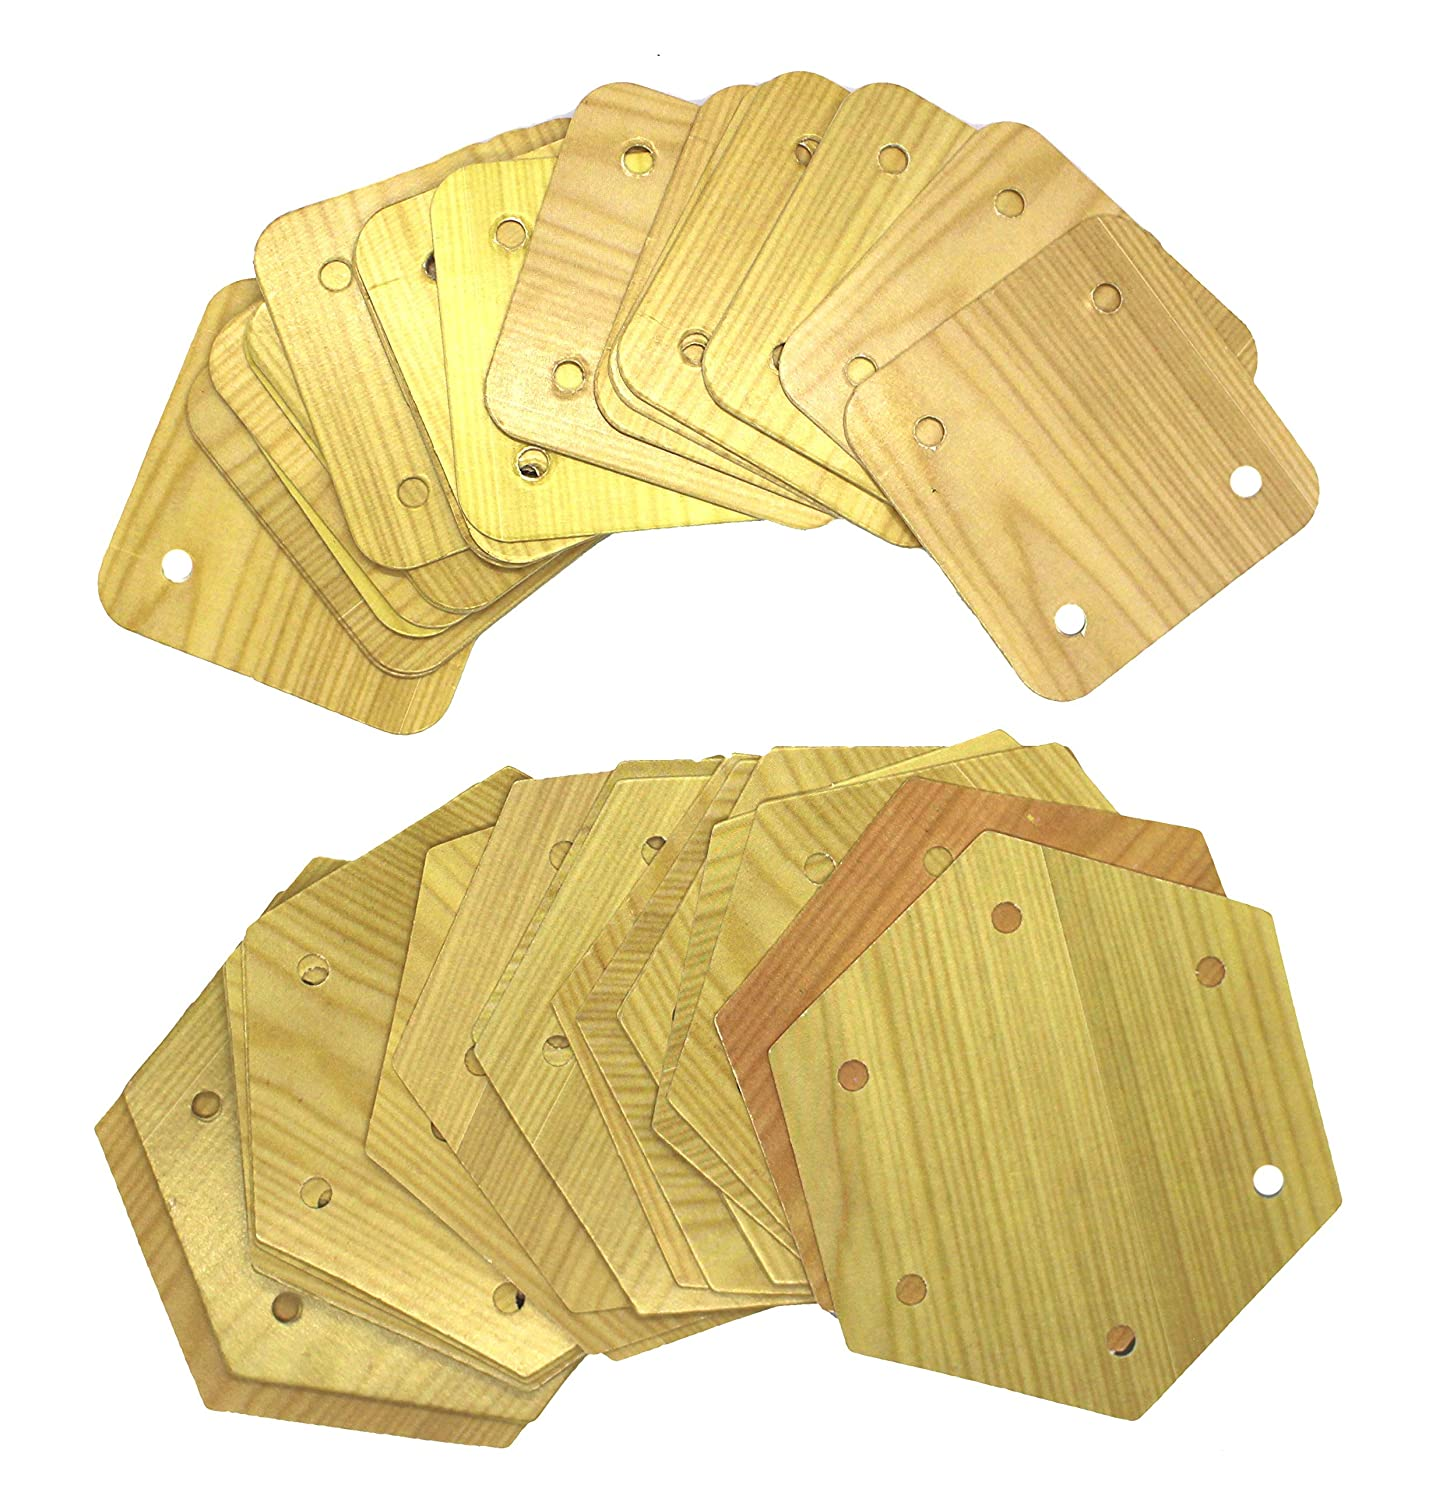 Paper Tablet Weaving Cards with Wood Grain Print. (3.25x3.25 6 Hole)